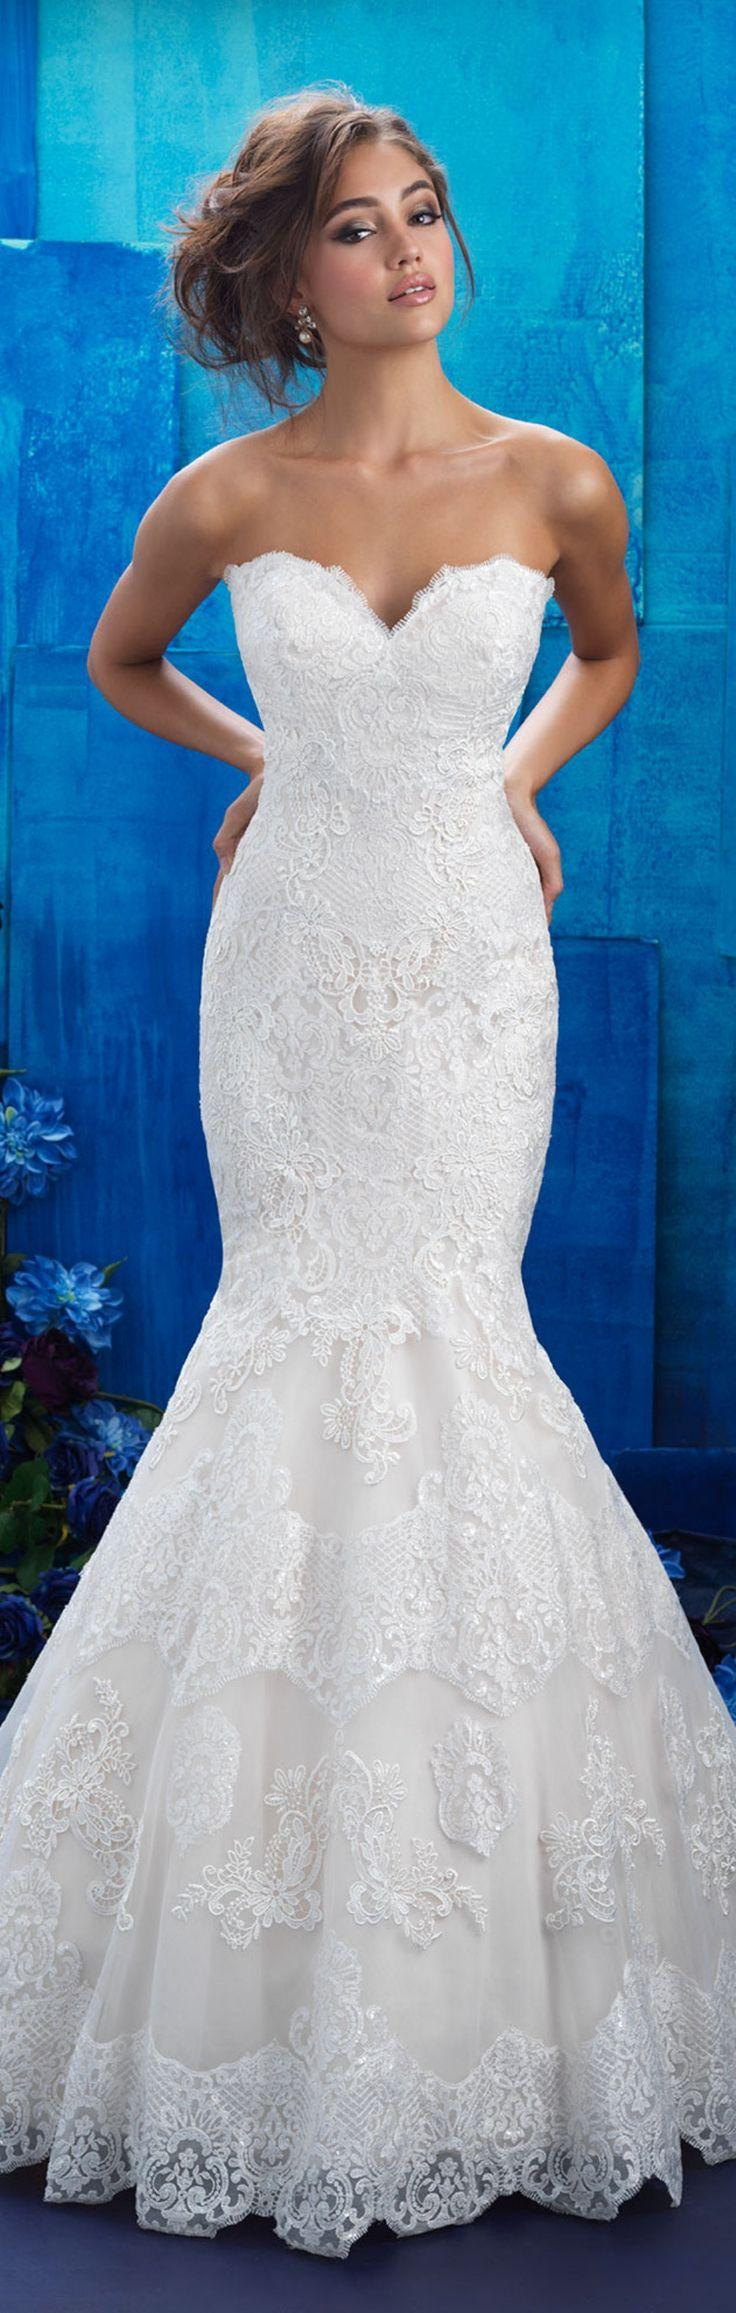 Mariage - 37 Elegant Lace Mermaid Wedding Dress From World Class Designer